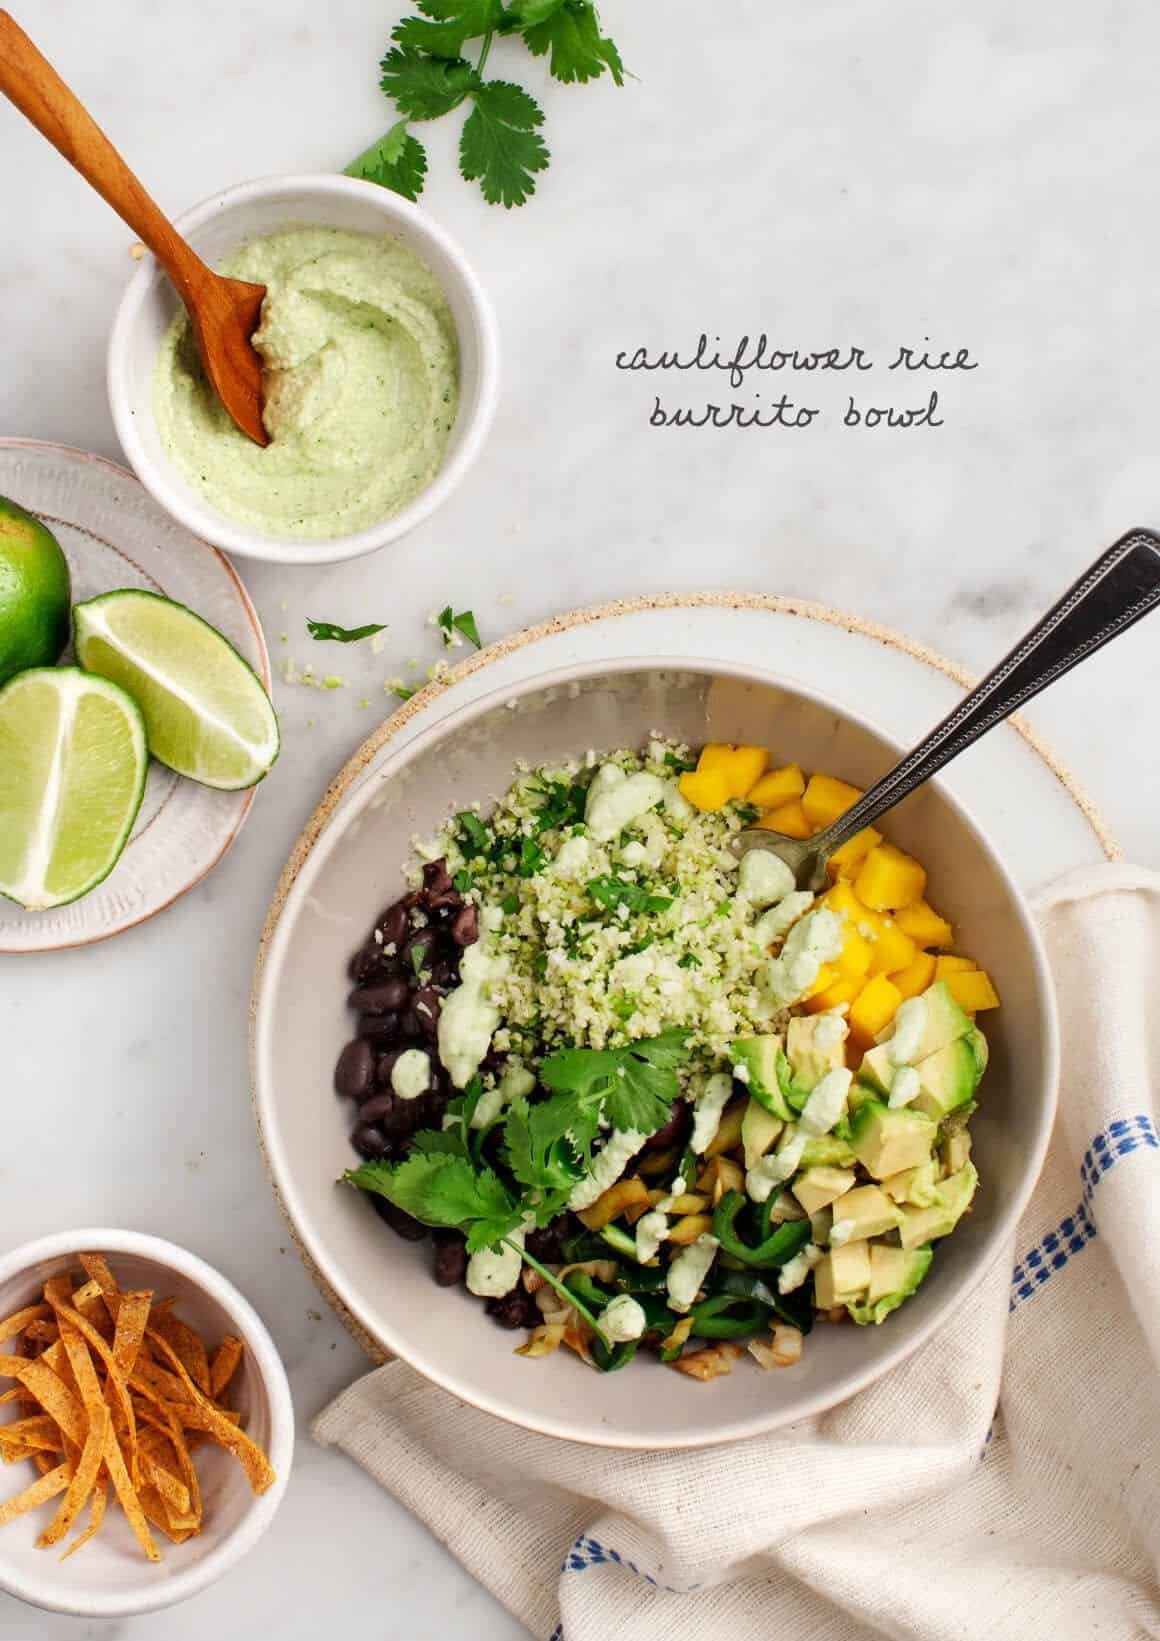 Burrito Bowl Recipe with Cauliflower Rice